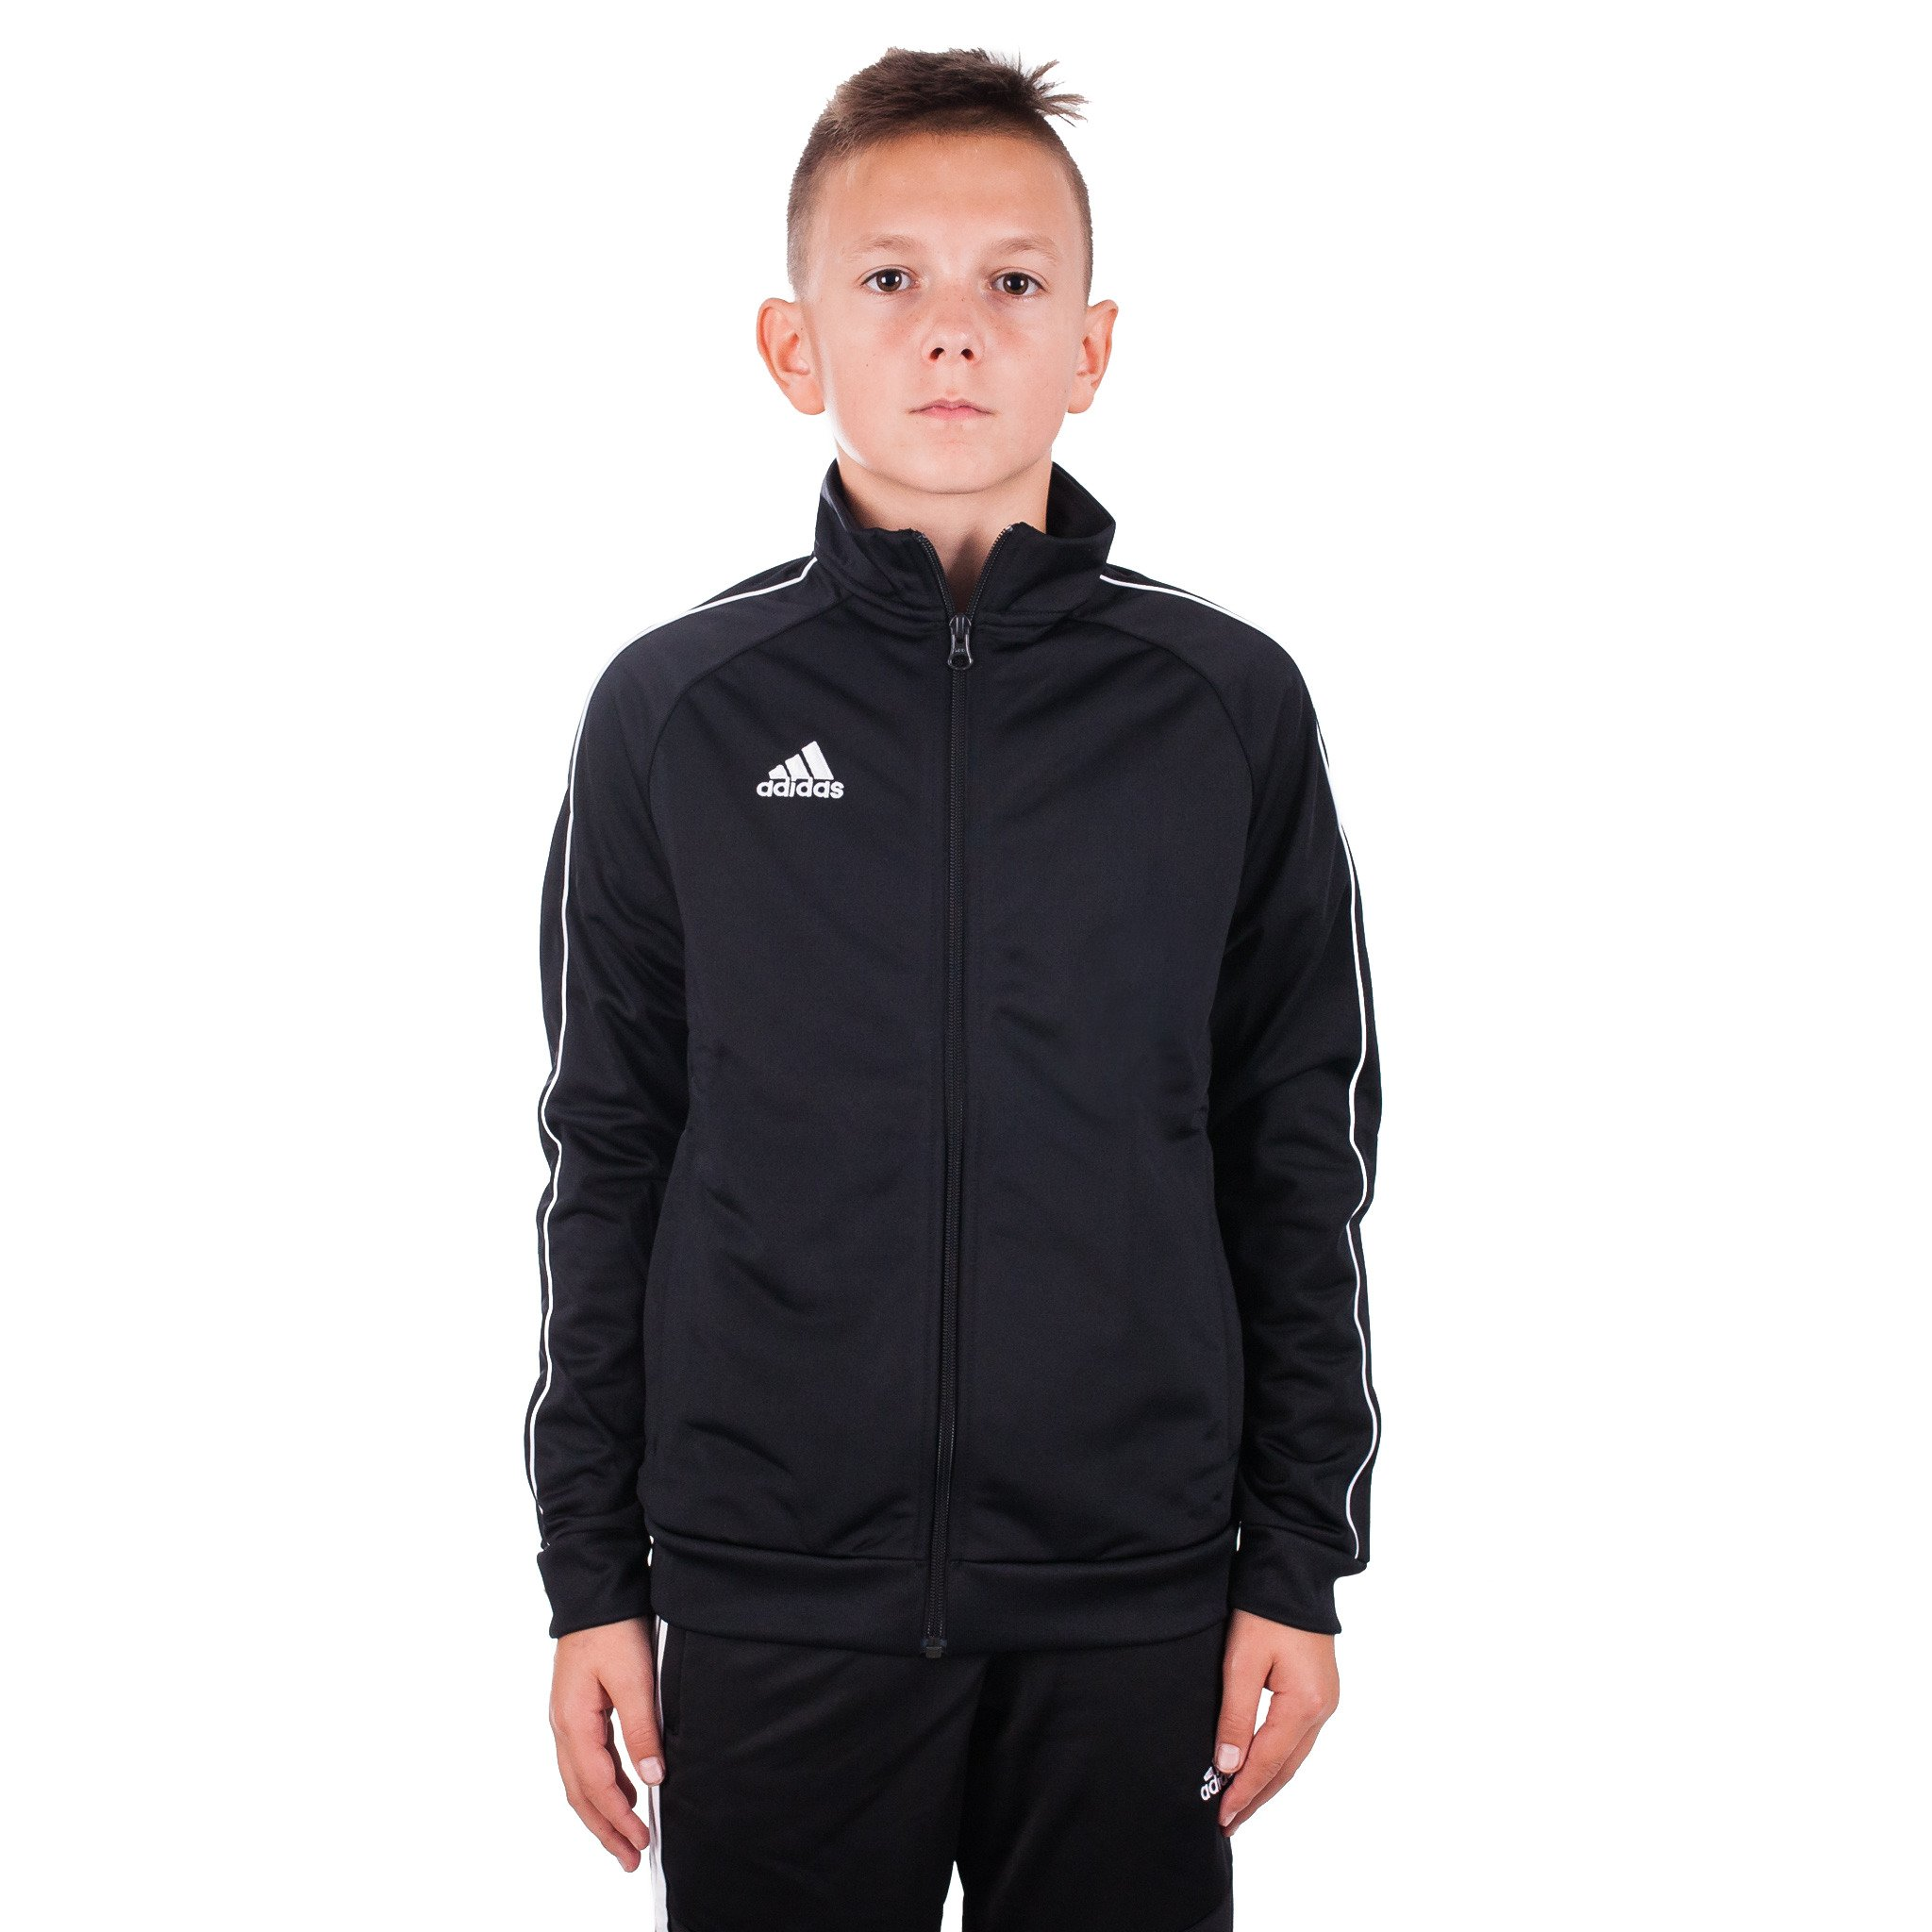 Bluza adidas Core 18 Junior CE9052 czarna